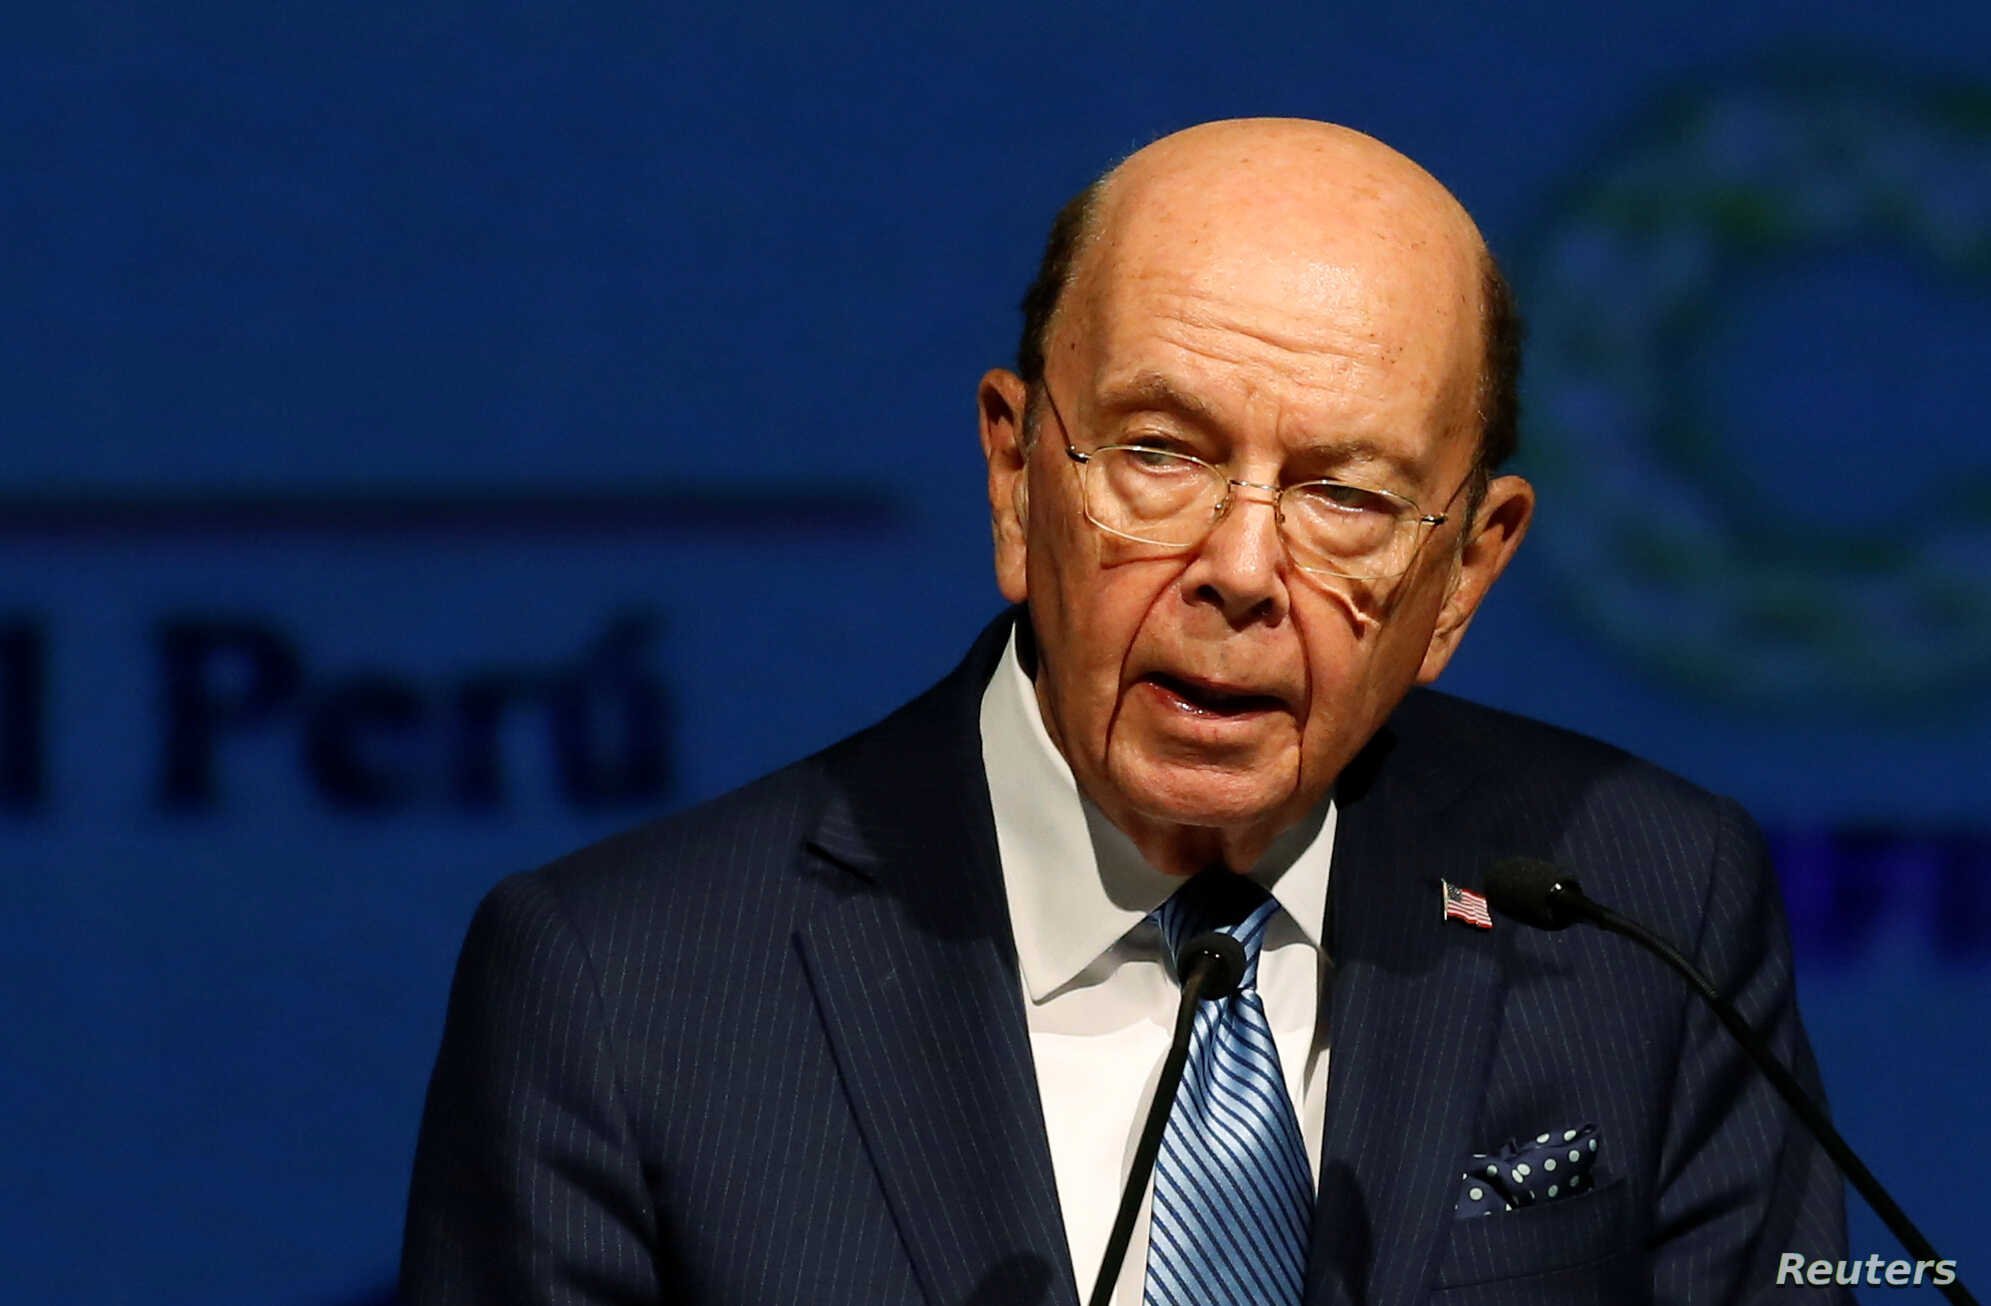 U.S. Commerce Secretary Wilbur Ross delivers a speech during the Americas Business Summit in Lima, Peru, April 12, 2018.